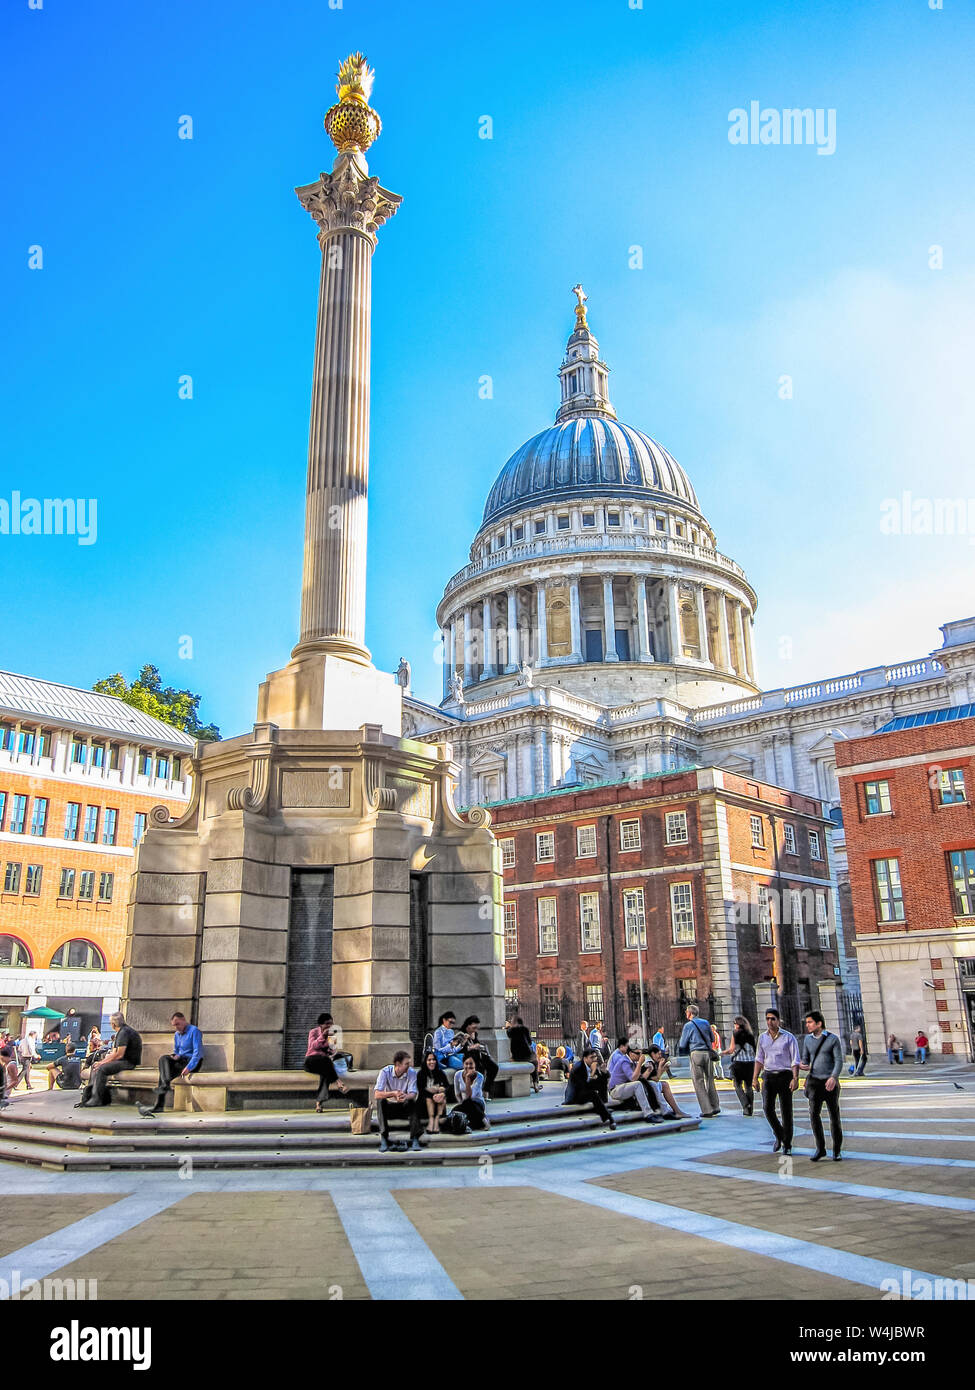 Paternoster Square with a view of St Paul's Cathedral. London, England. Stock Photo